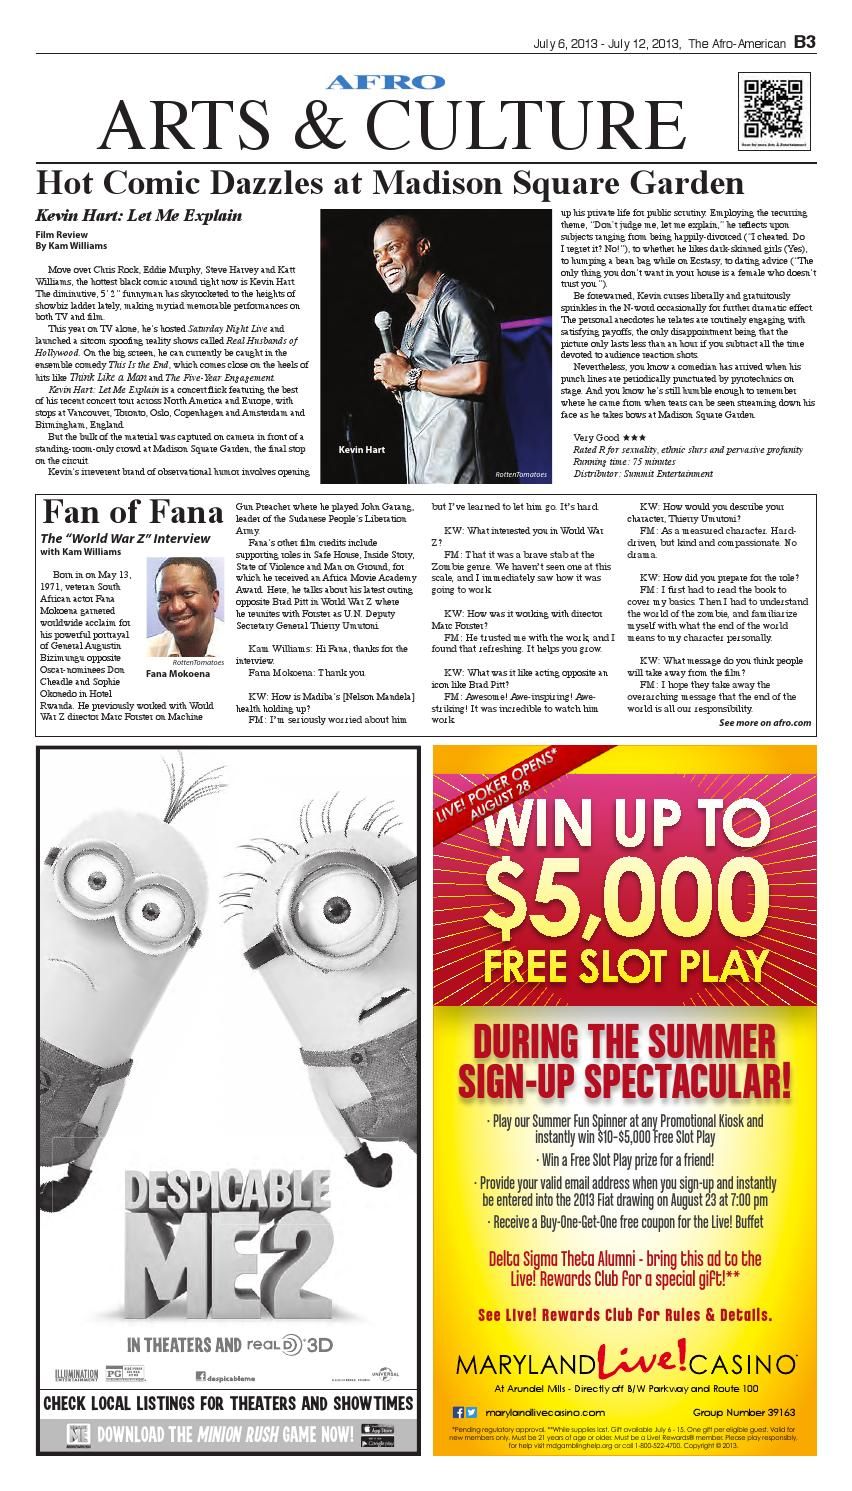 Prince Georges Afro-American Newspaper July 6 2013 by The